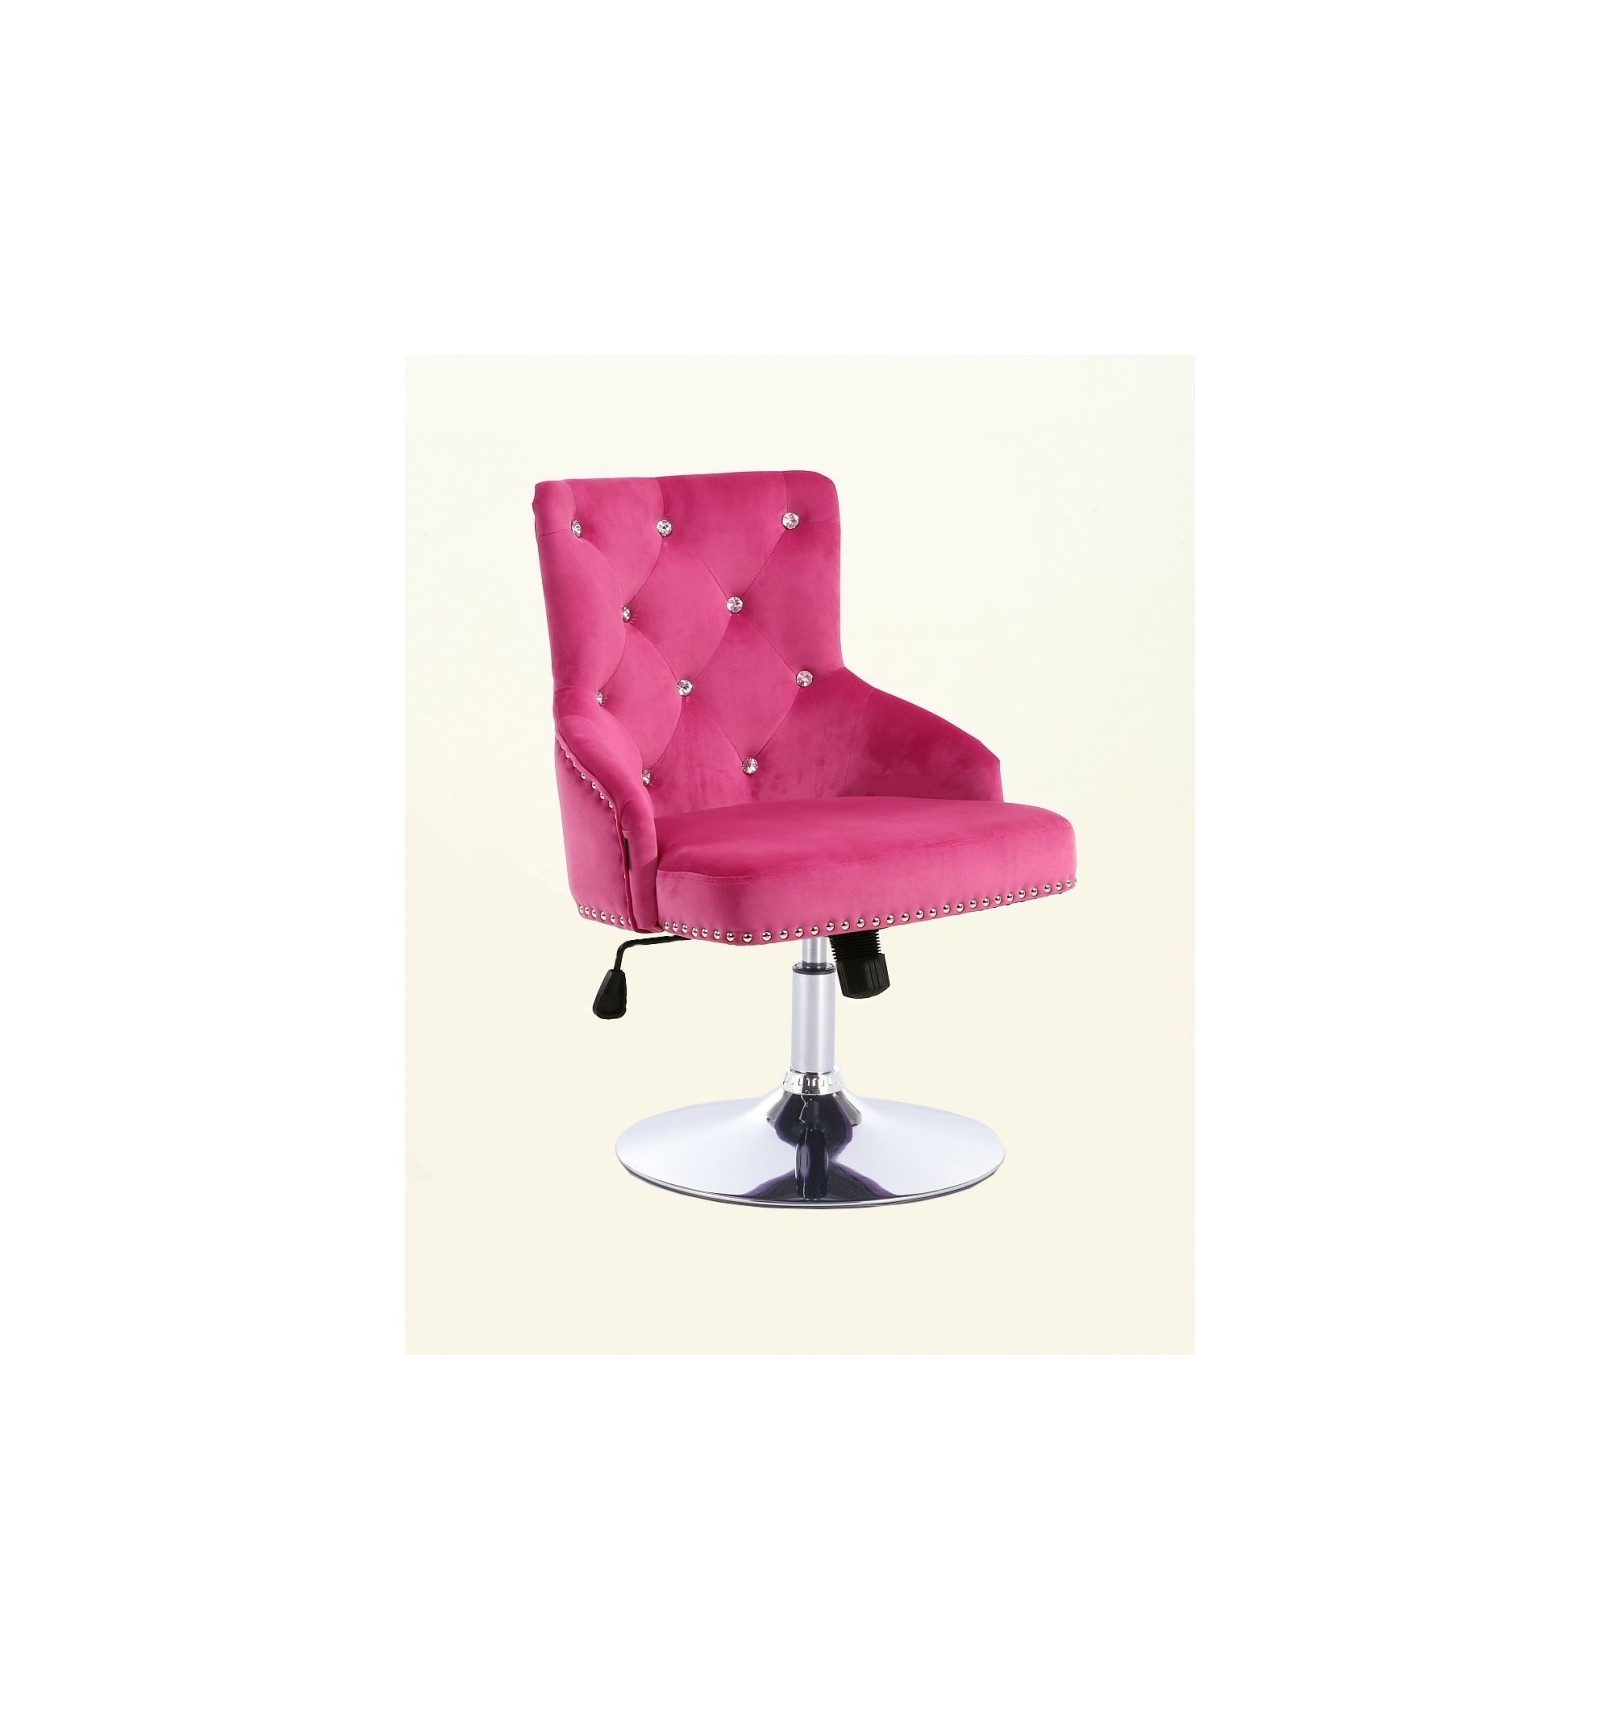 Hroove Salon Chair Studded Pink Hr654cn Bella Furniture Ireland